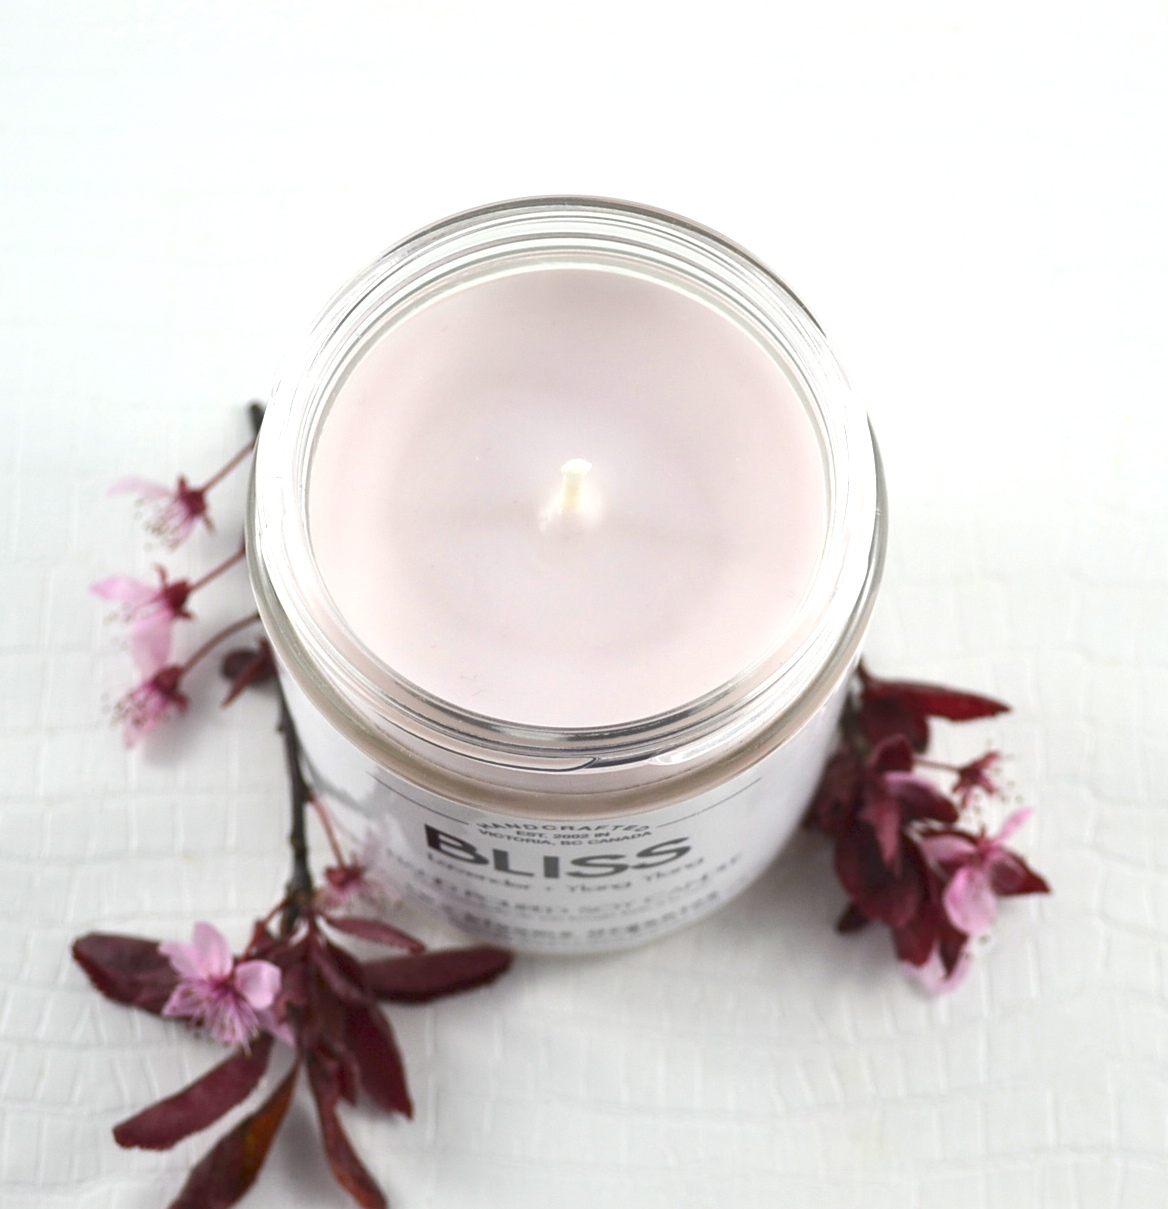 Two Blooms Bliss Soy Candle  Photo Credit:  Michelle Somers